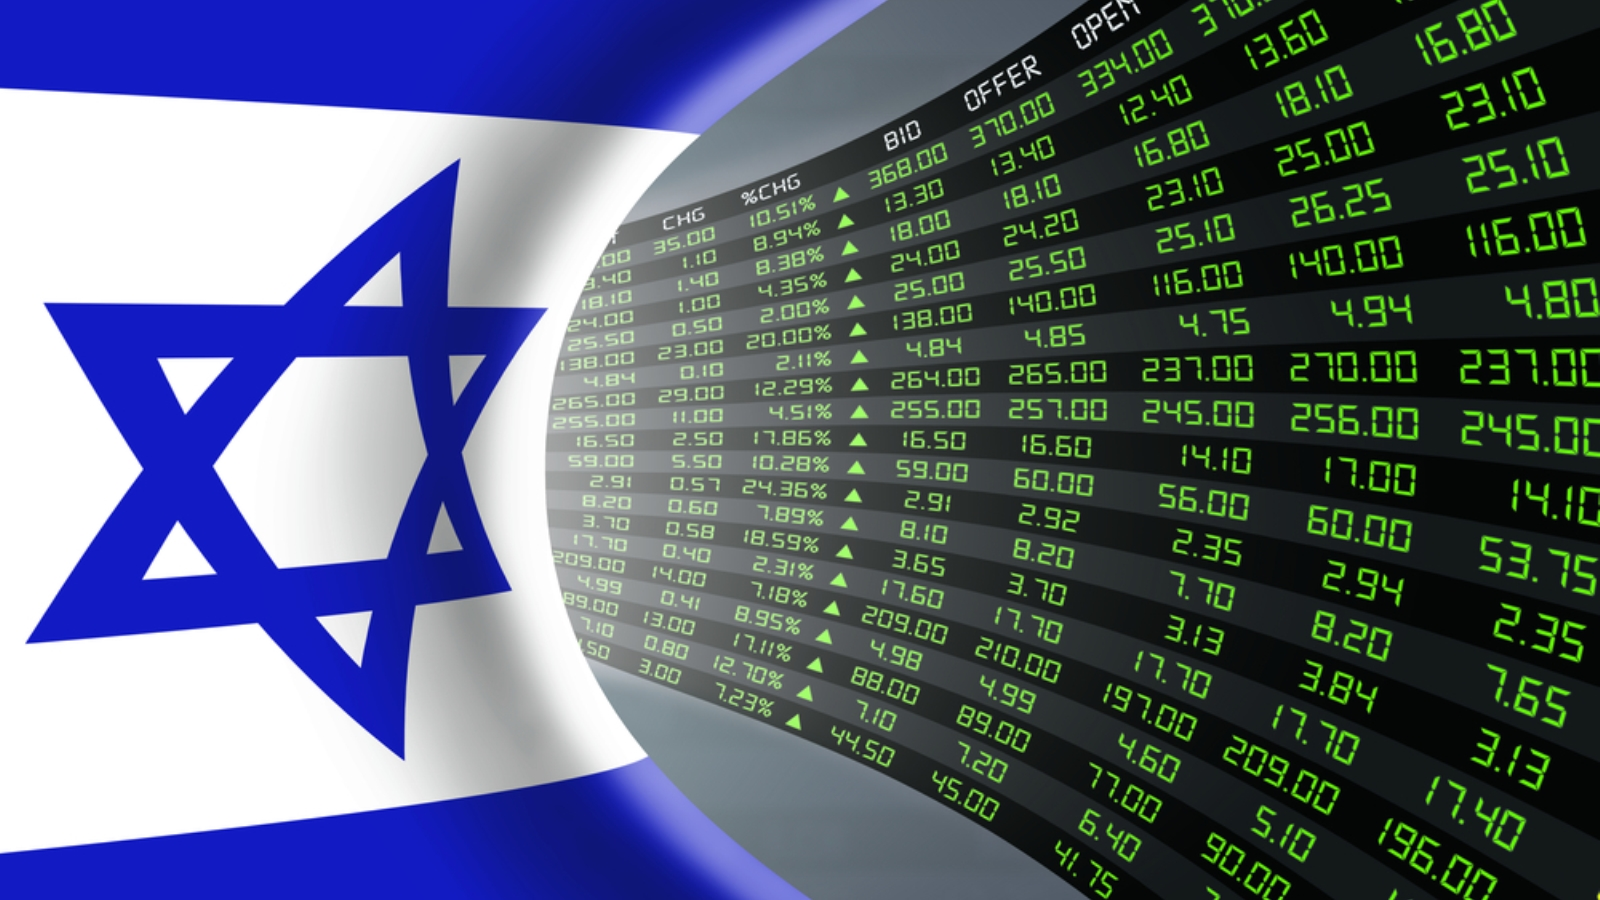 $823m flowed into Israeli life sciences in the past year